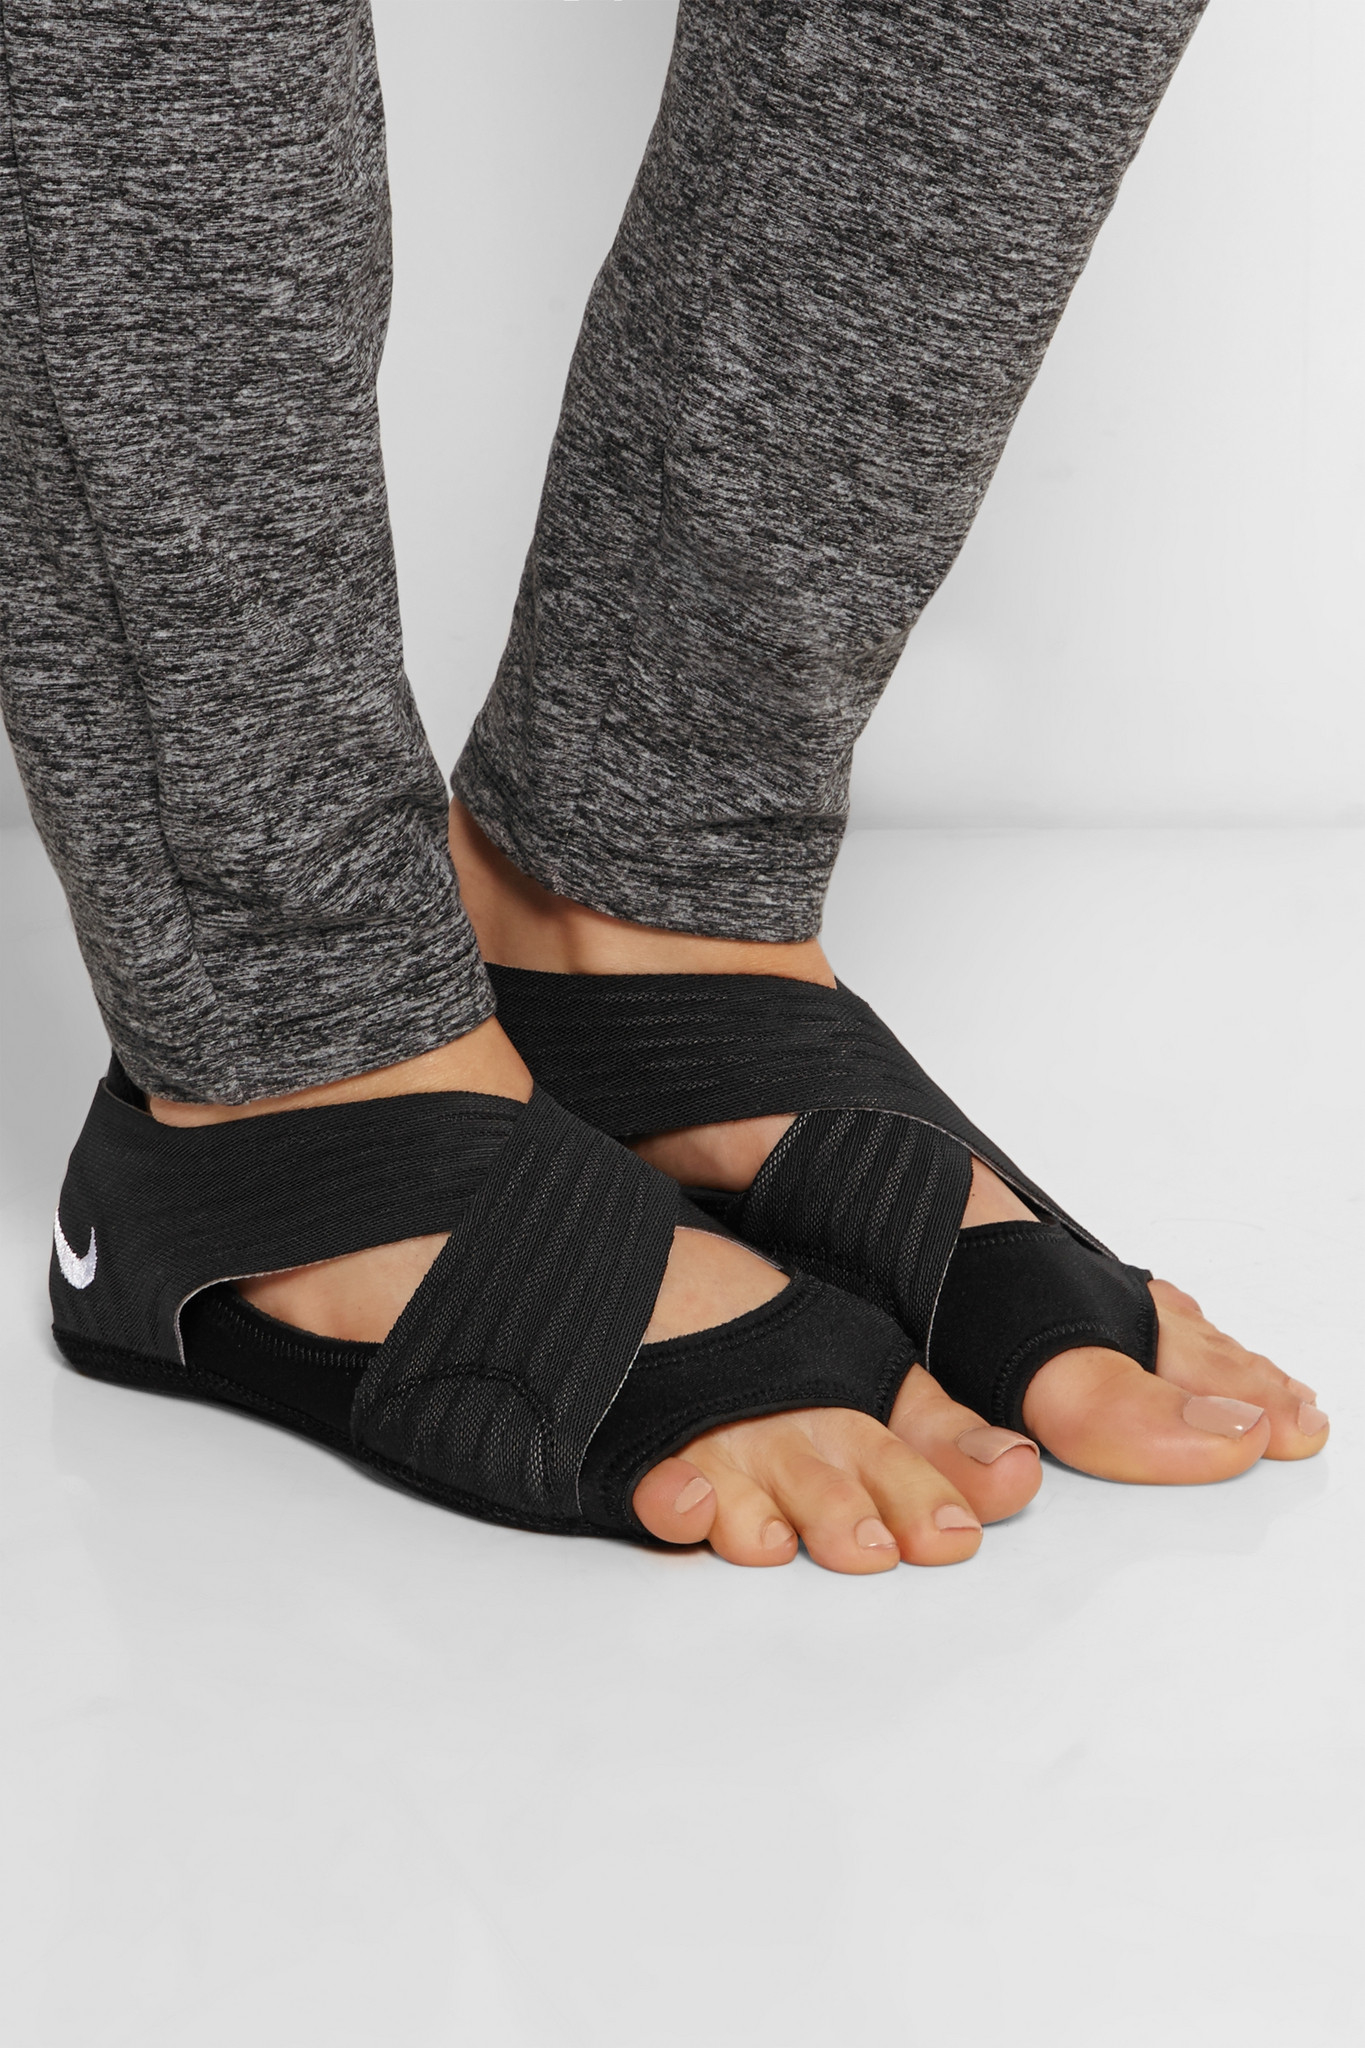 Nike Yoga Wrap Shoes Uk